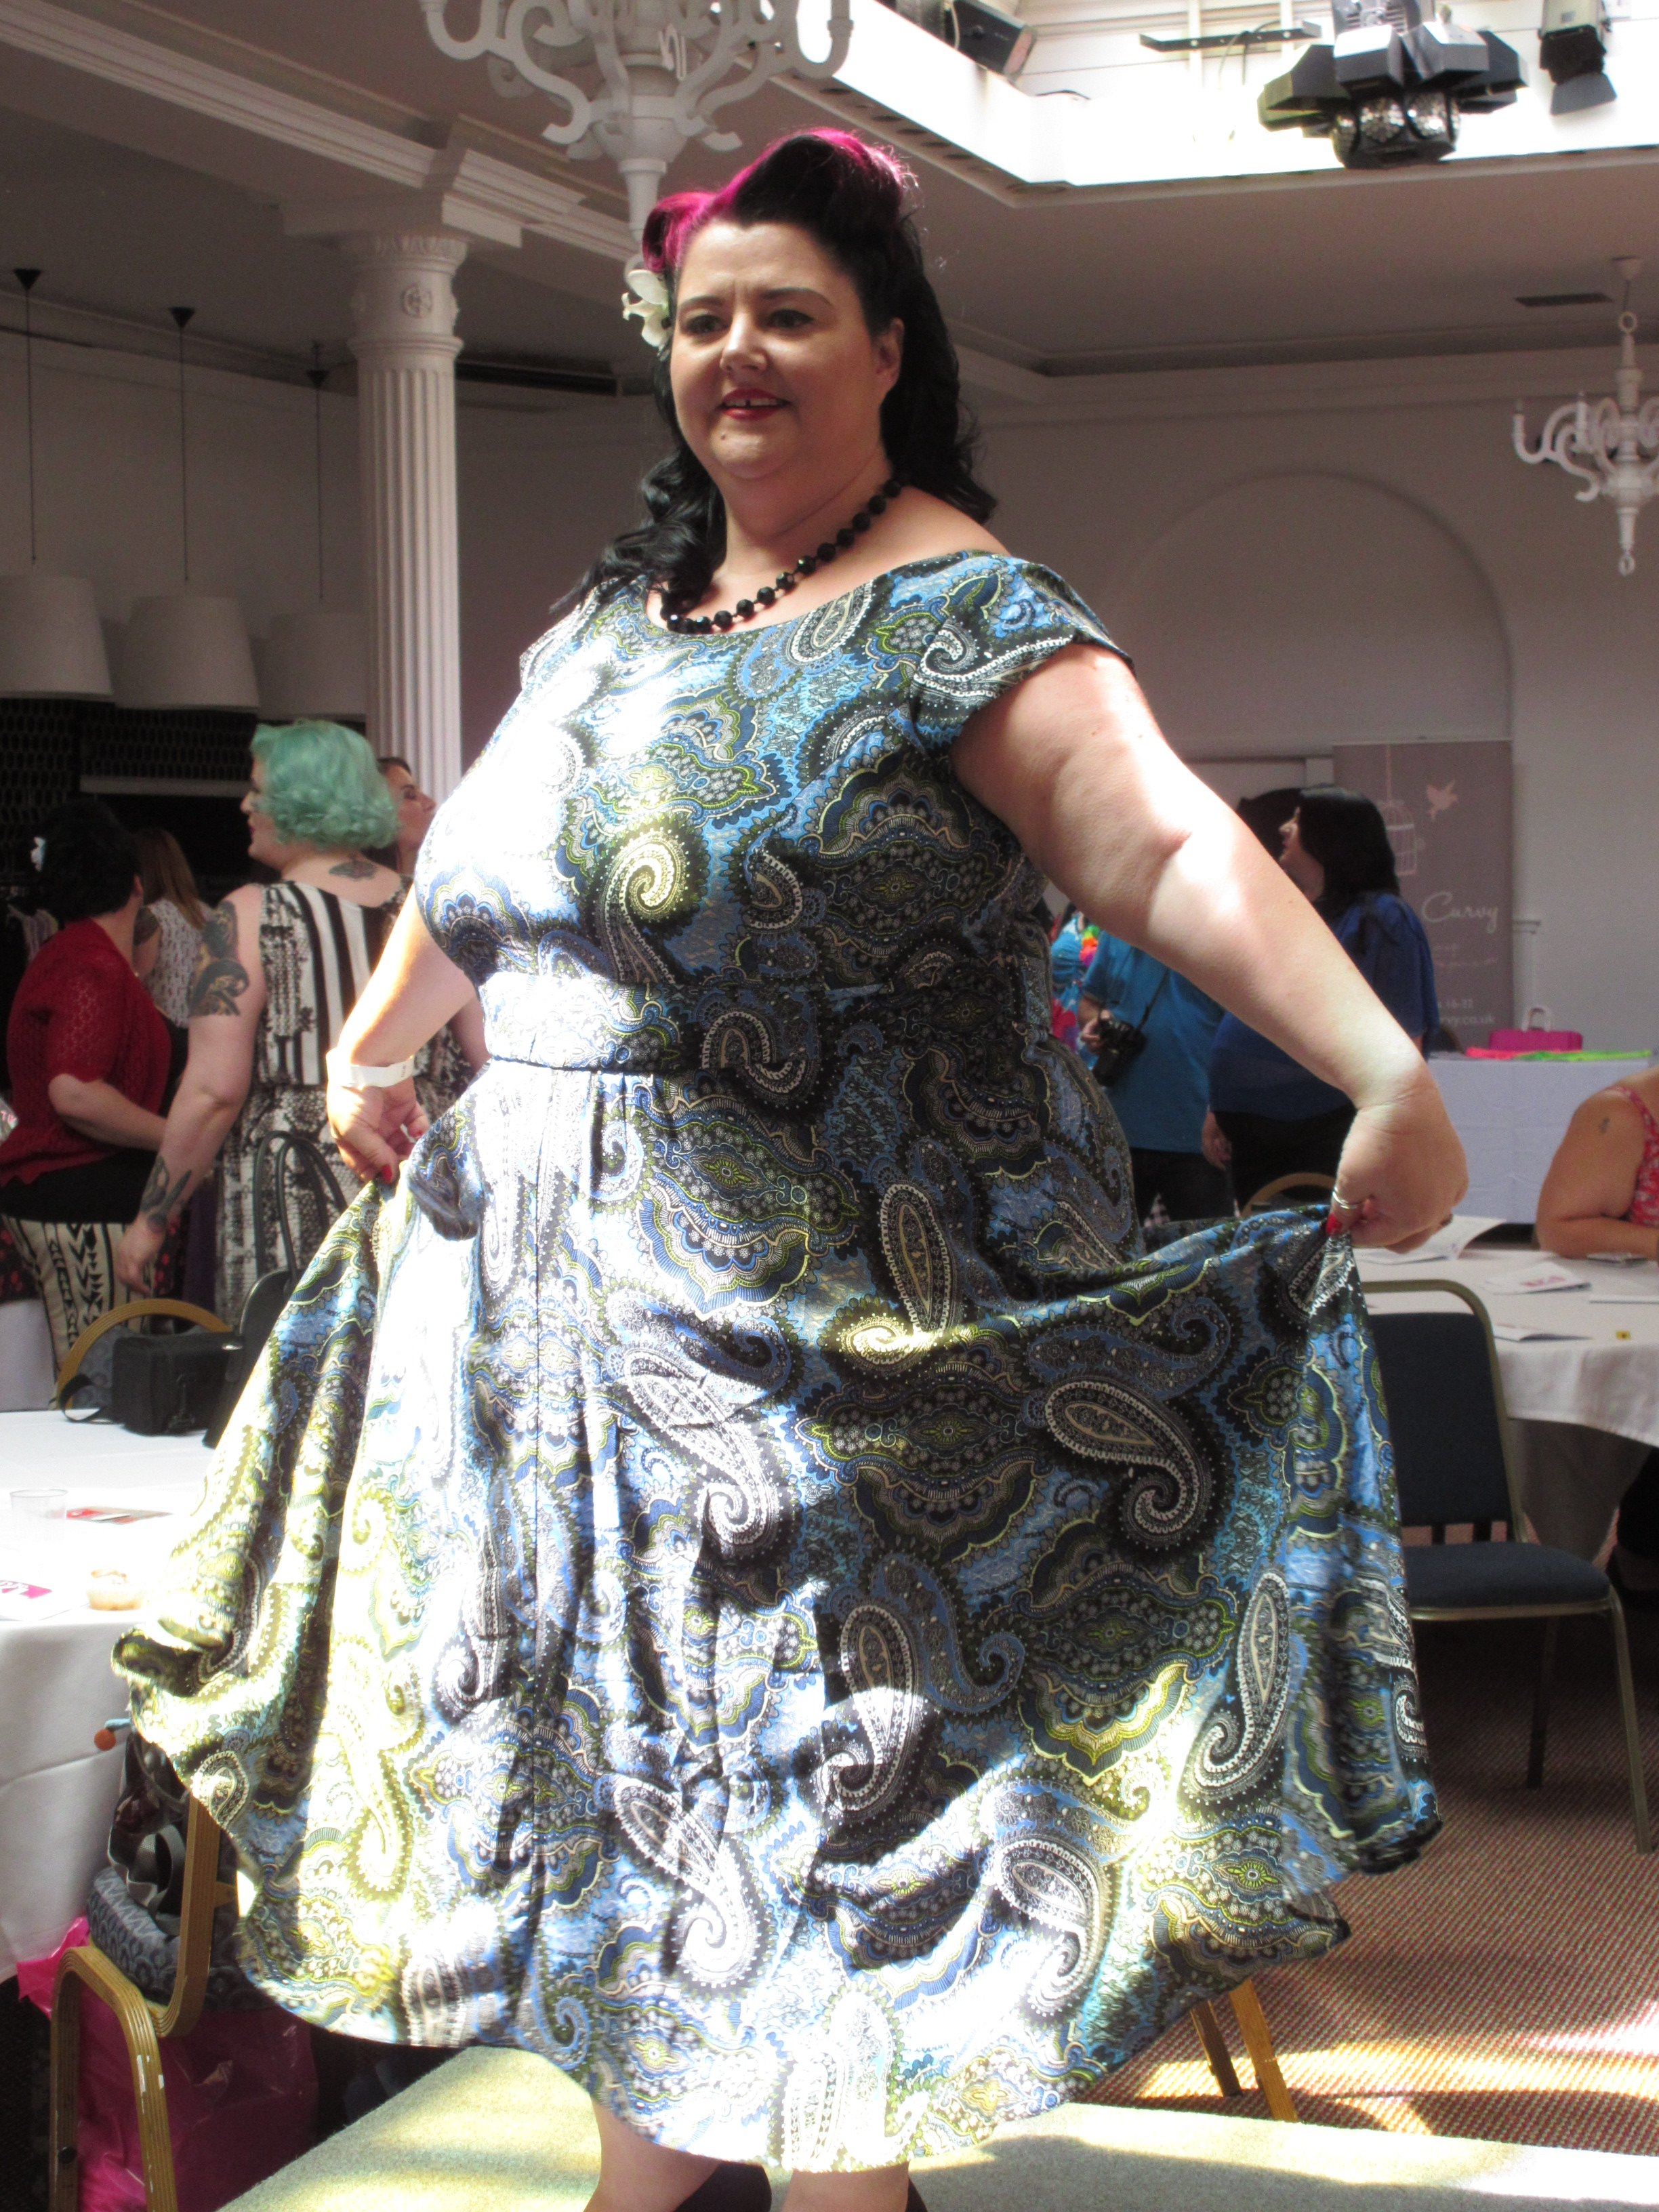 The amazing Tanya from www.secretplussizegoddess.com in Apples and Pears Clothing